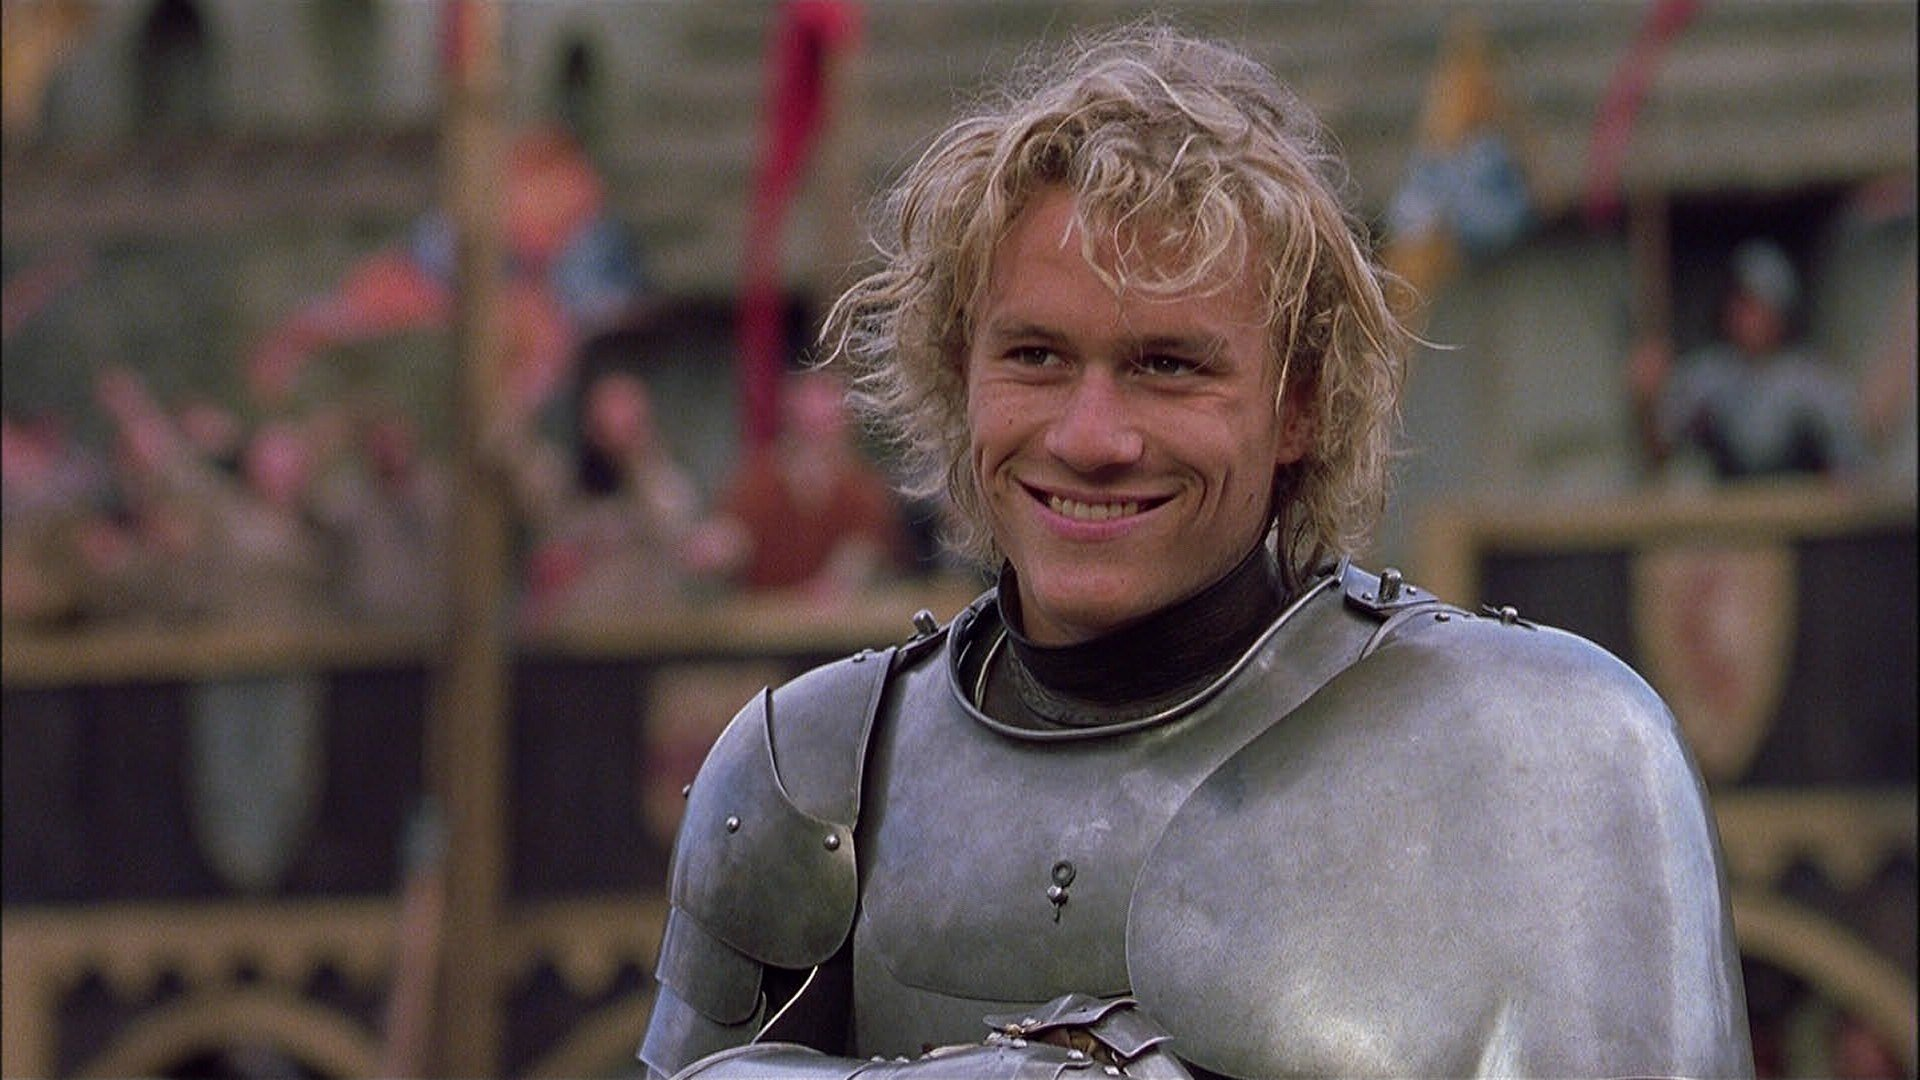 High resolution Heath Ledger full hd wallpaper ID:144315 for computer